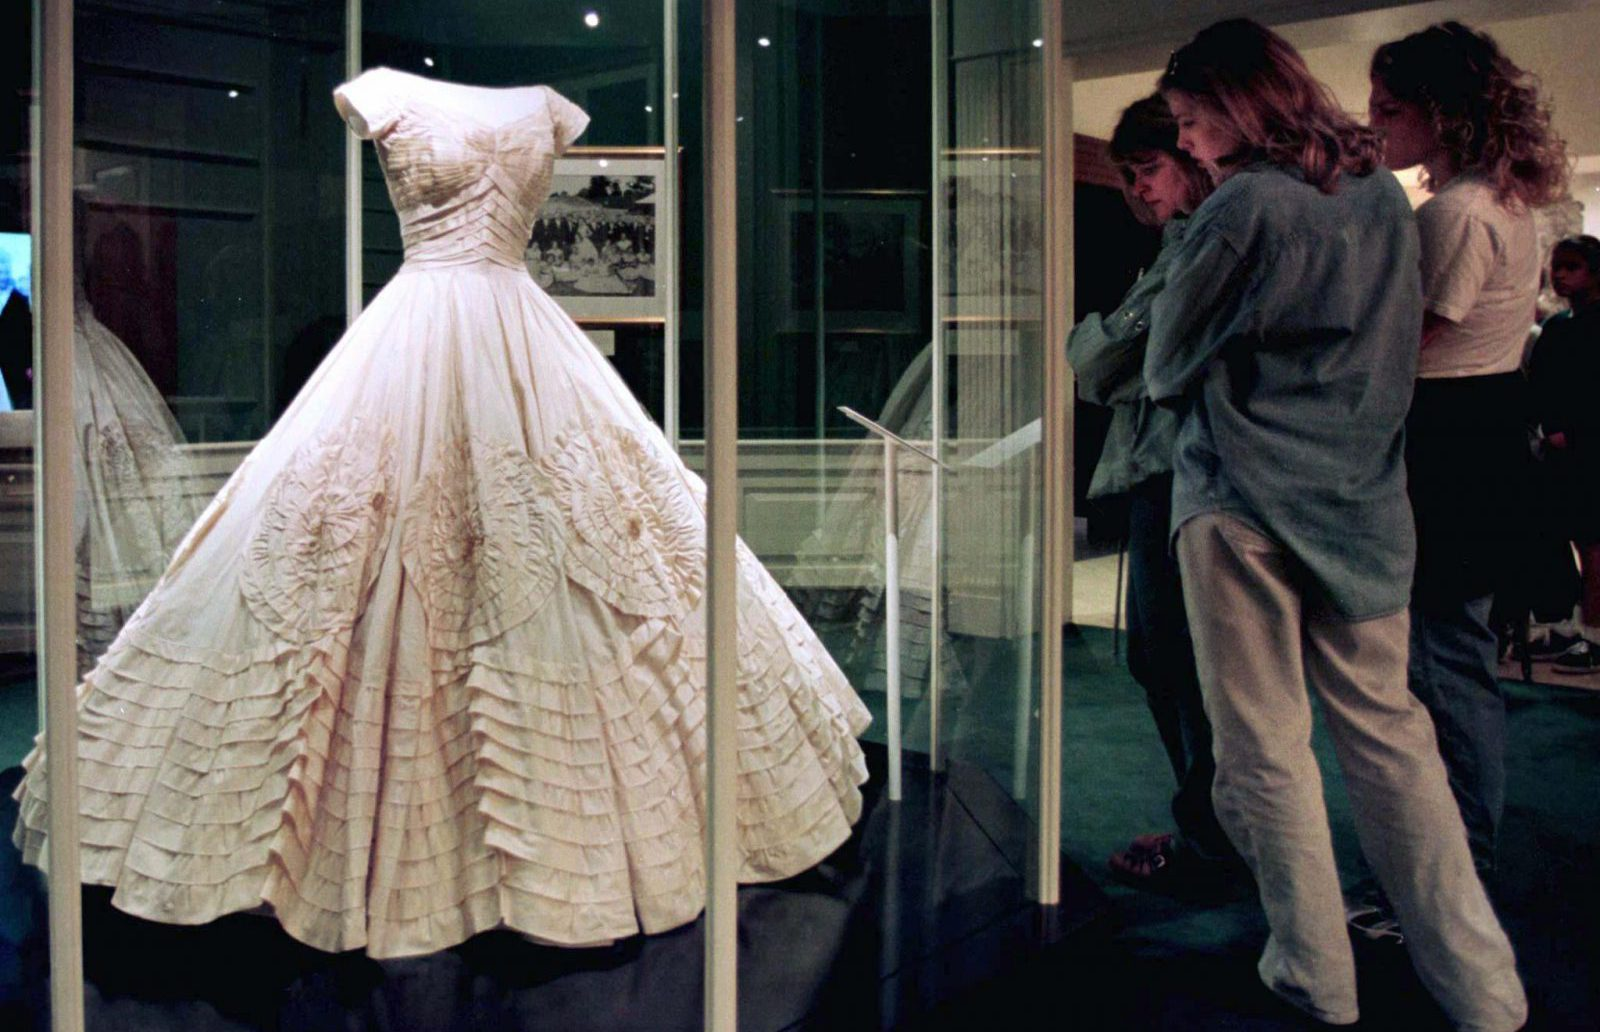 Visitors to the John F. Kennedy Library Museum admire Jacqueline Bouvier Kenndey's wedding dress in Boston, May 27.  John F. Kennedy Jr. and his sister Caroline donated the dress to the museum after their mother's death.  The dress is made of over 50 yards of ivory silk taffeta. - RTXHHRH